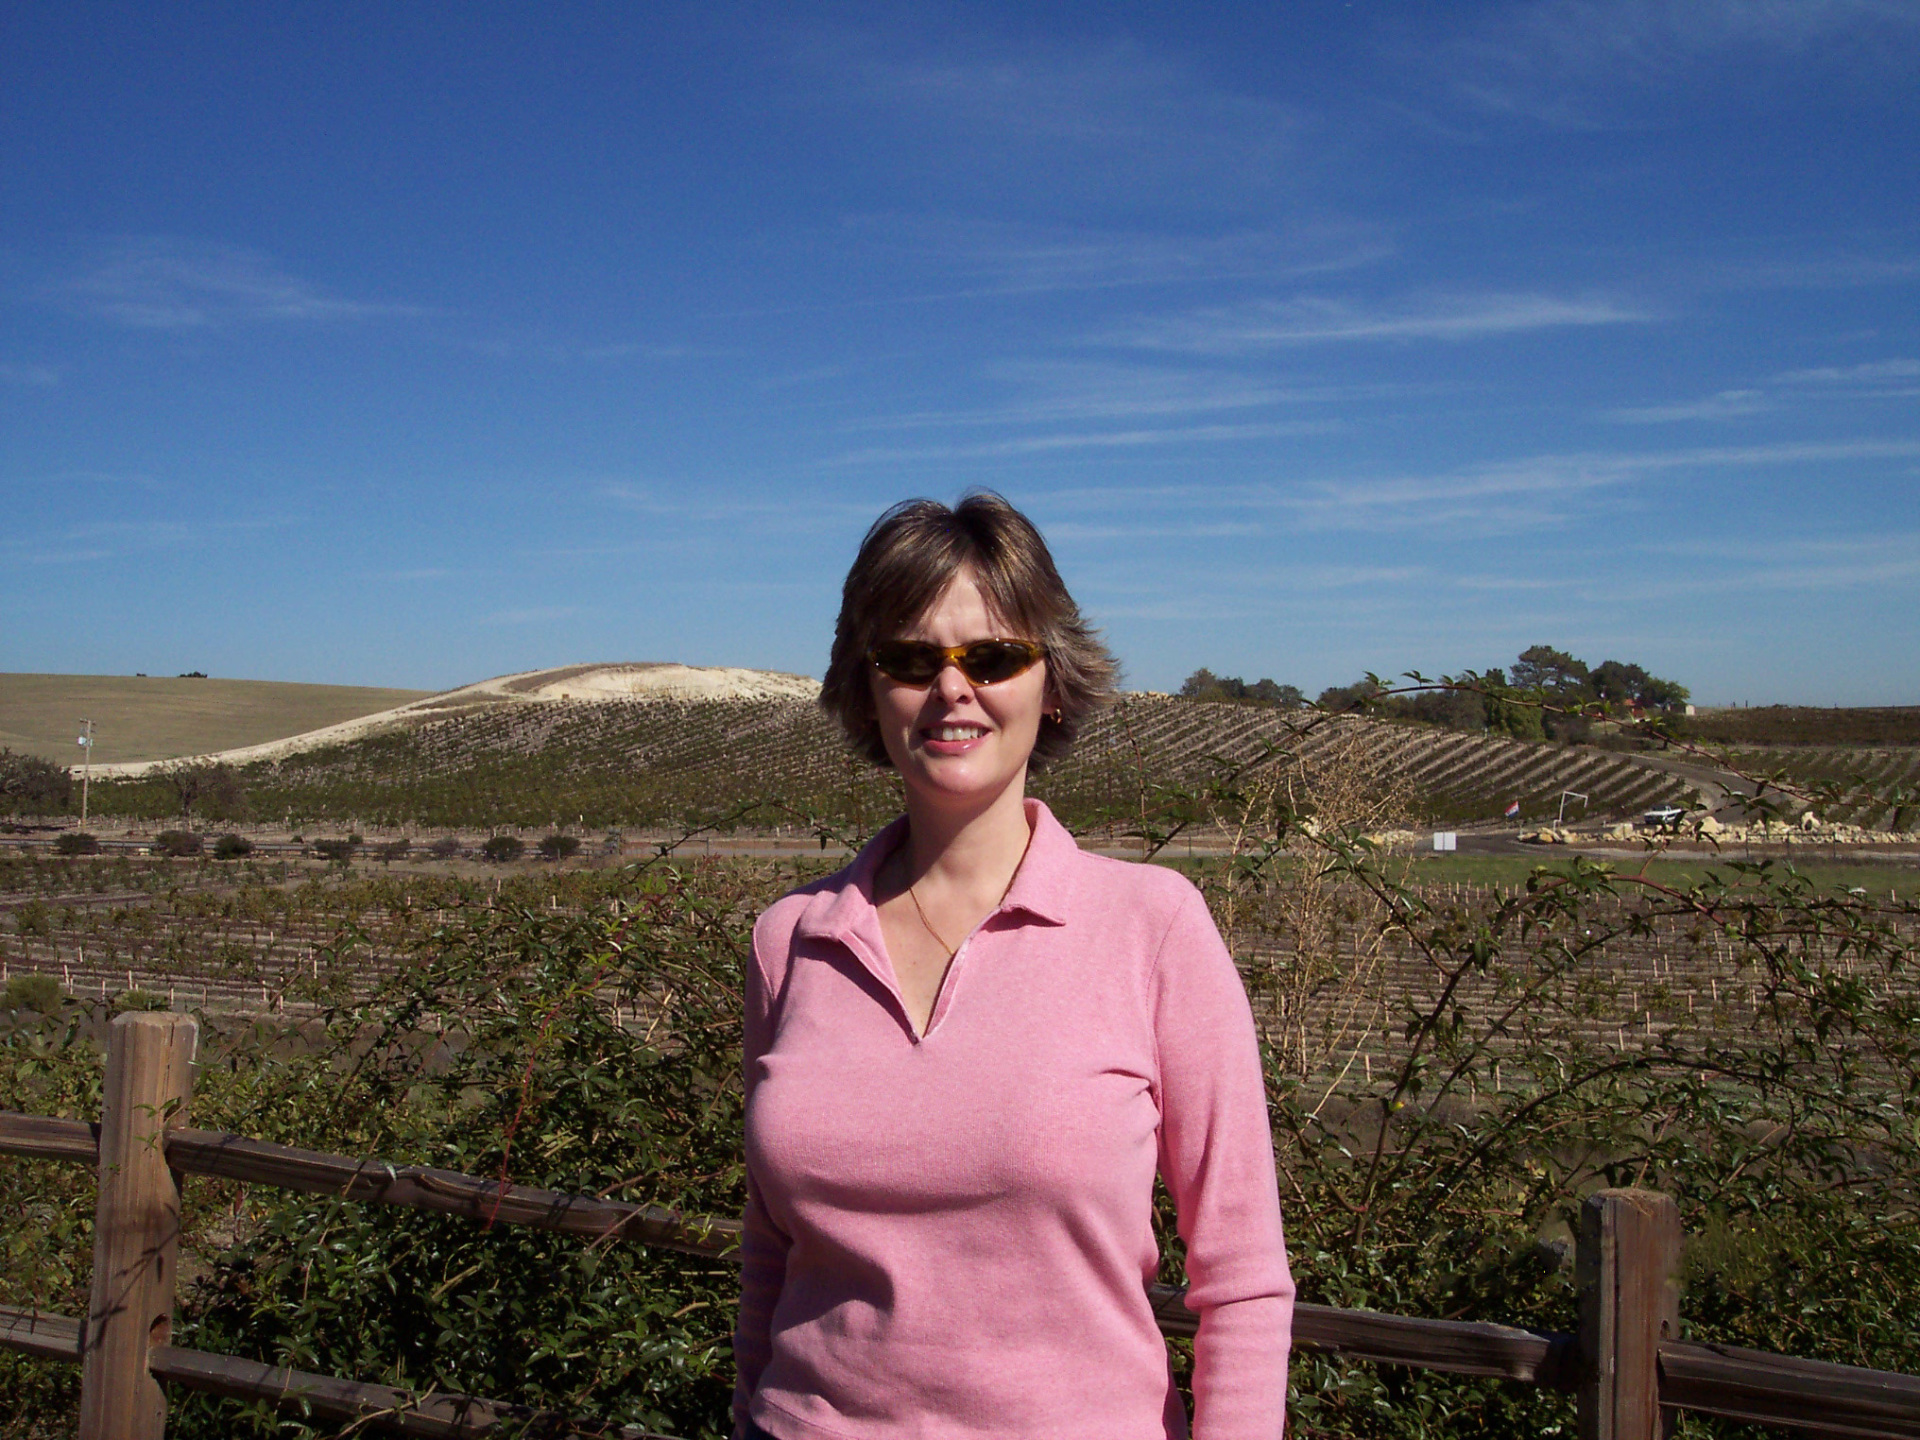 Kim in a Central California vineyard